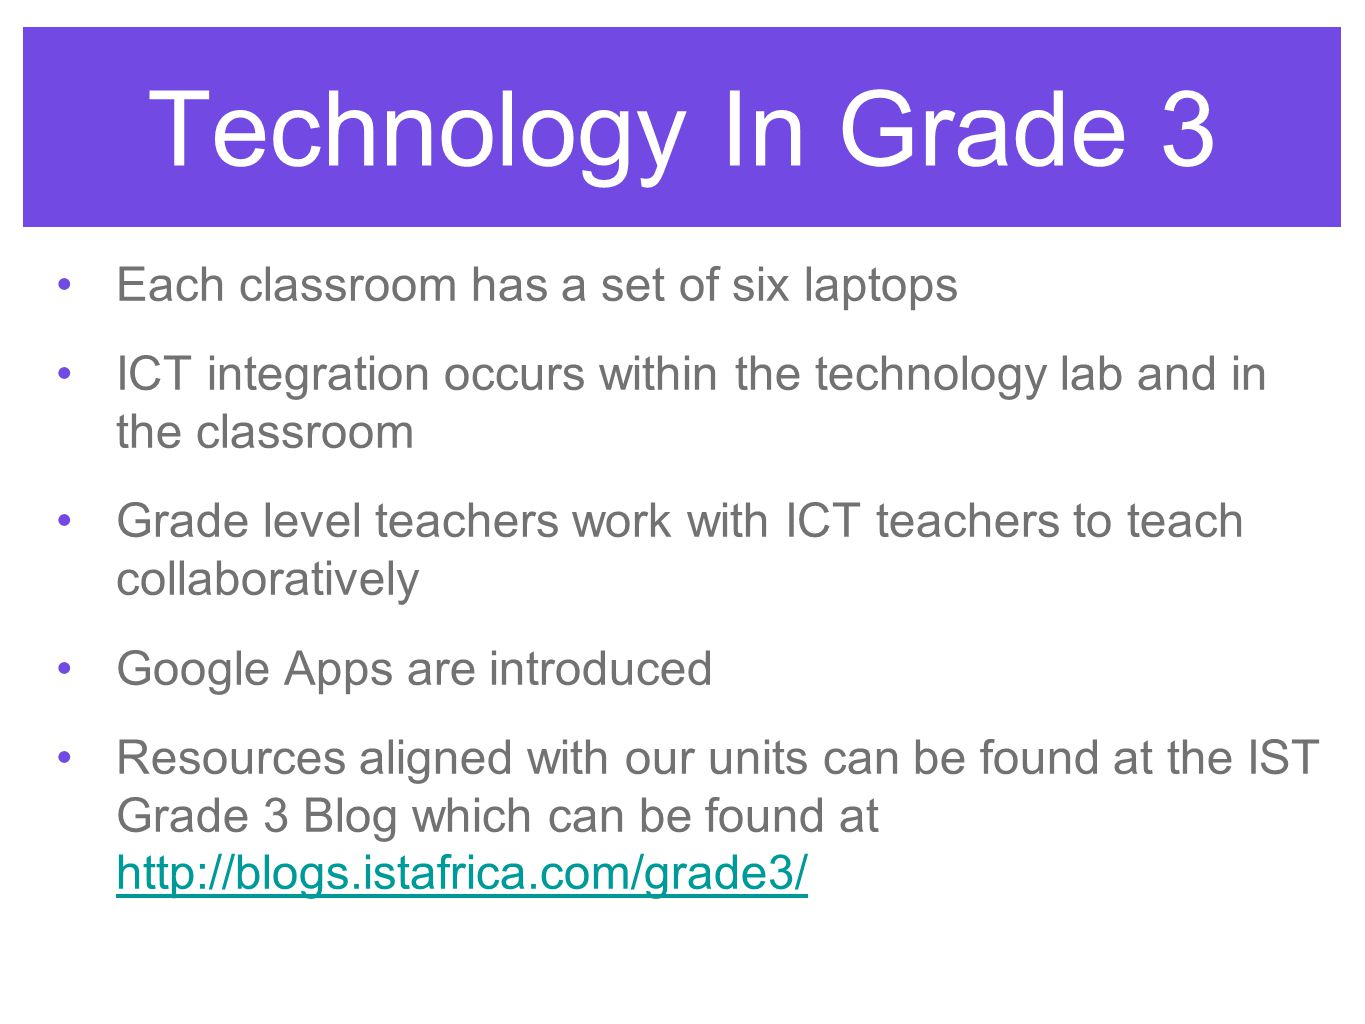 Technology In Grade 3 Each classroom has a set of six laptops ICT integration occurs within the technology lab and in the classroom Grade level teachers work with ICT teachers to teach collaboratively Google Apps are introduced Resources aligned with our units can be found at the IST Grade 3 Blog which can be found at http://blogs.istafrica.com/grade3/ http://blogs.istafrica.com/grade3/